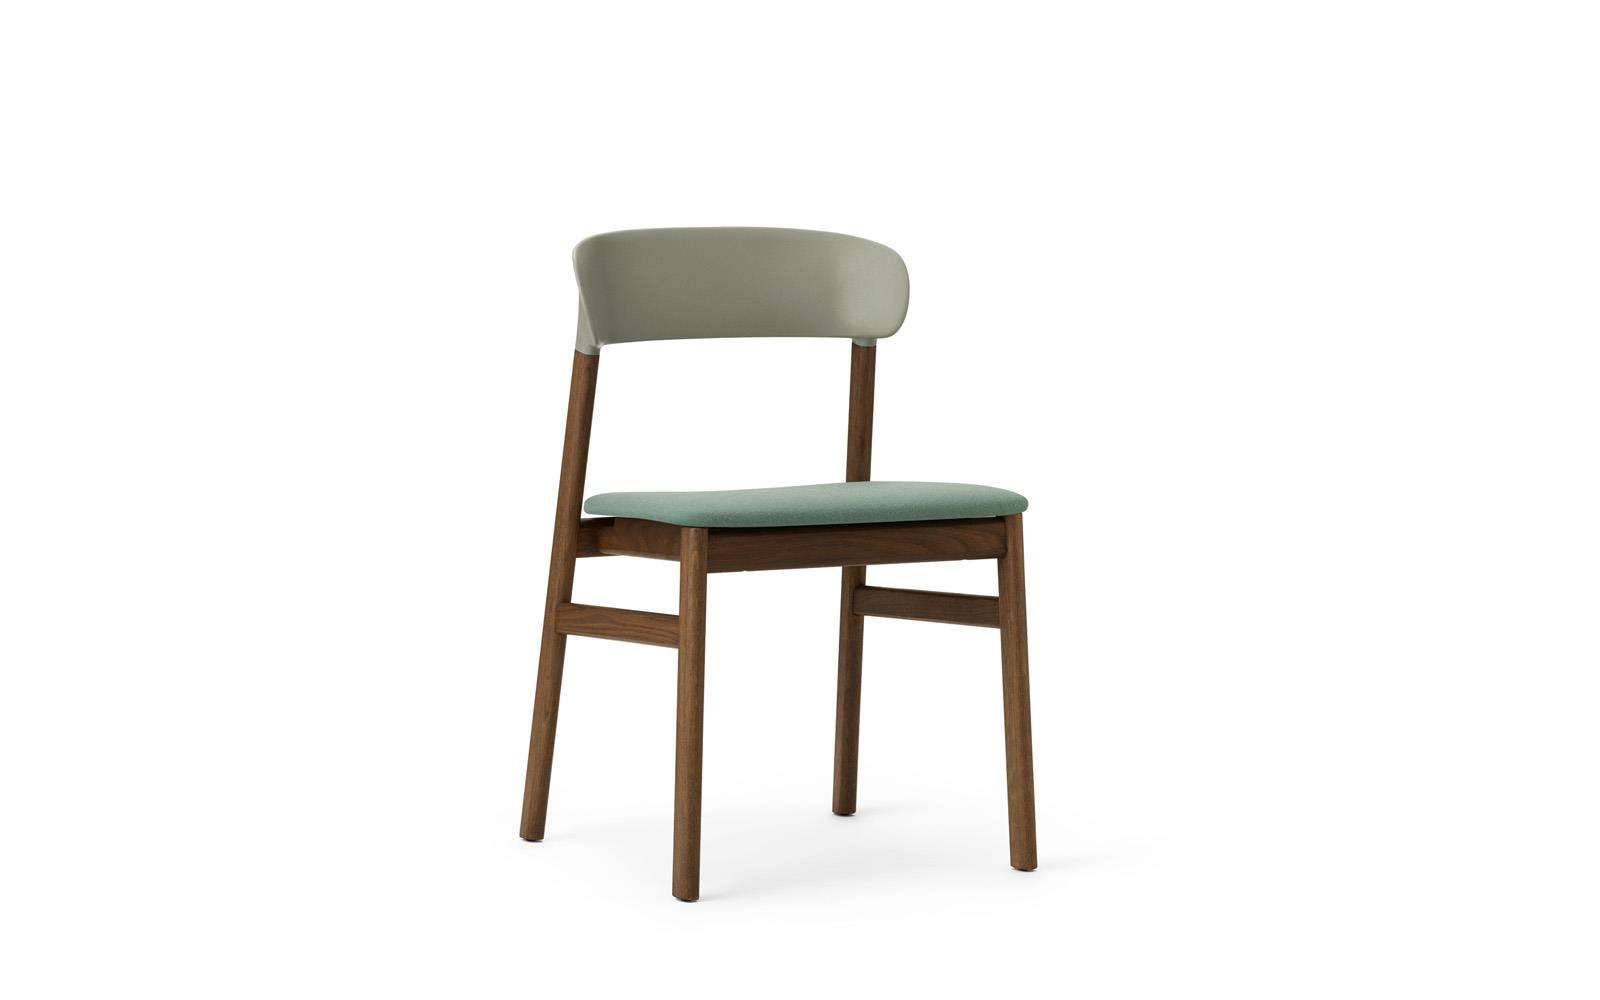 Green Upholstered Chair Herit Chair Upholstery Smoked Oak Synergy Dusty Green